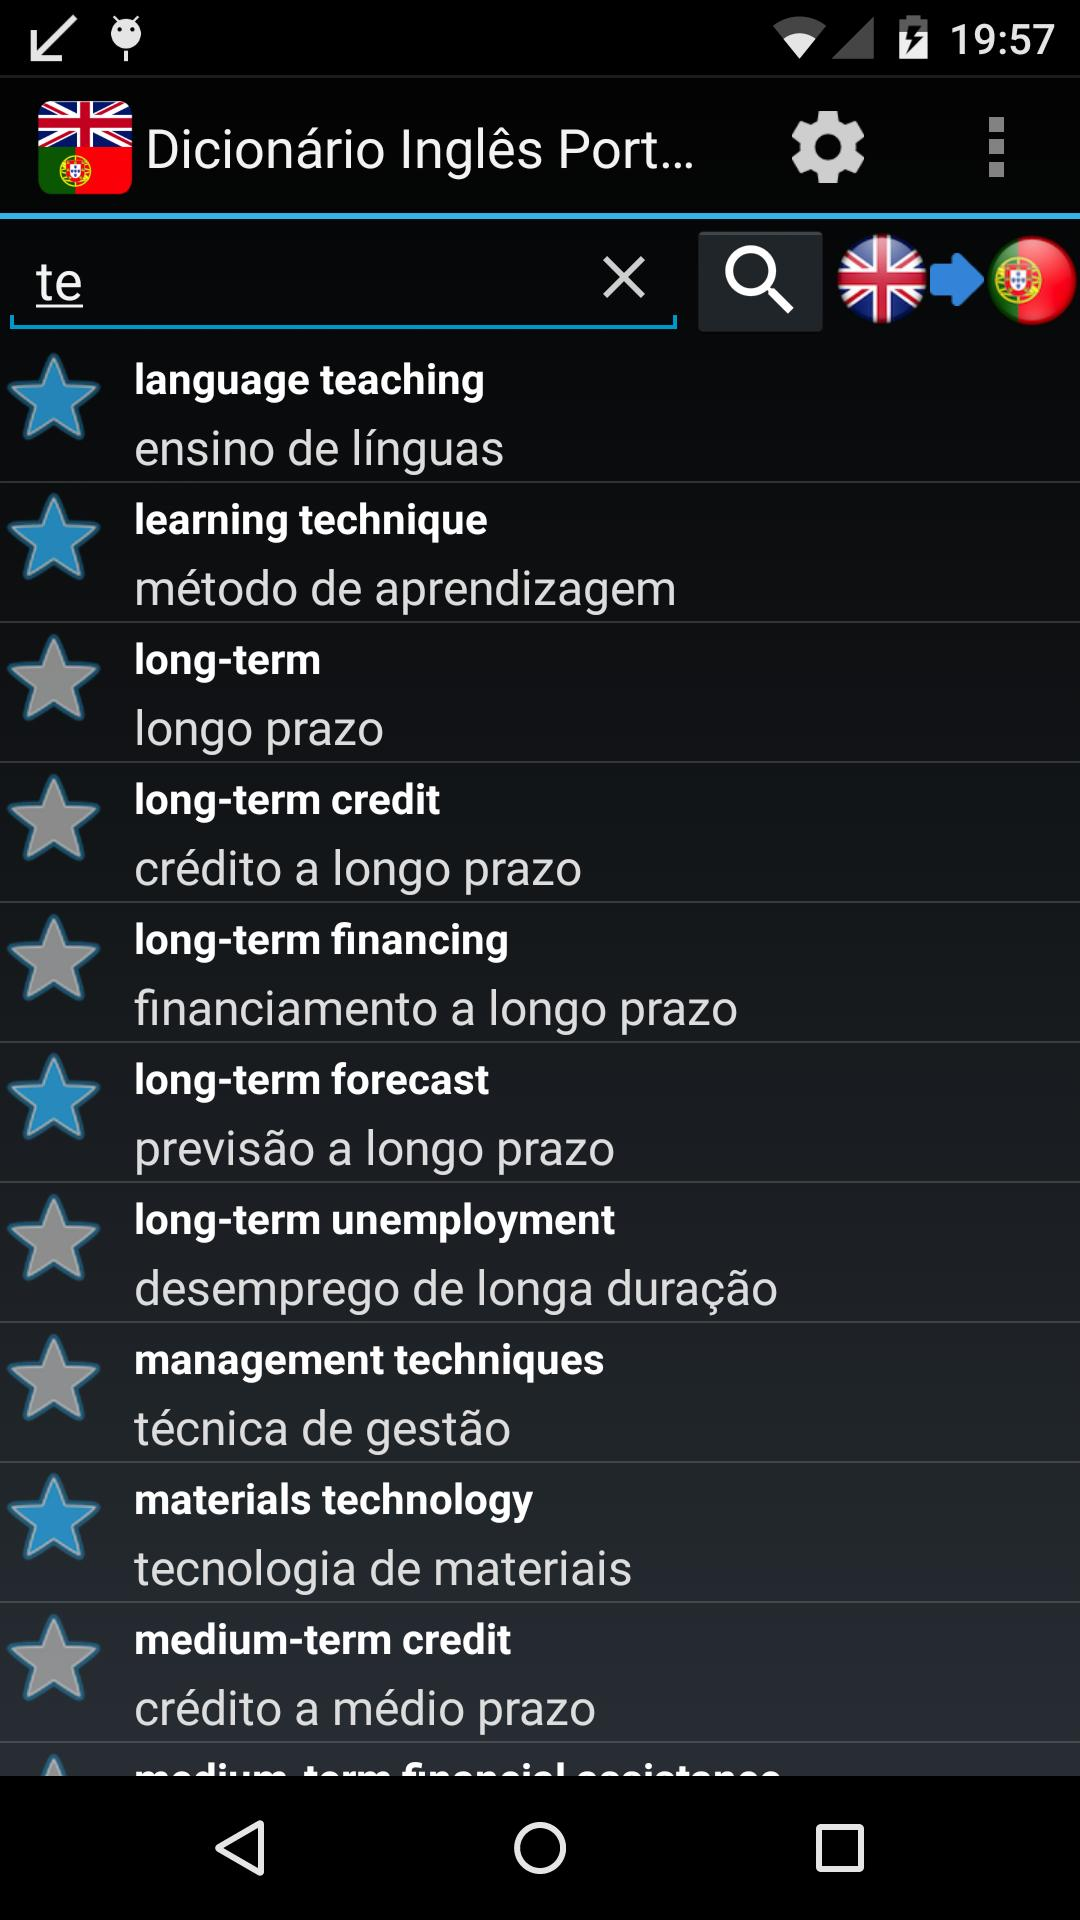 english to portuguese dictionary apk